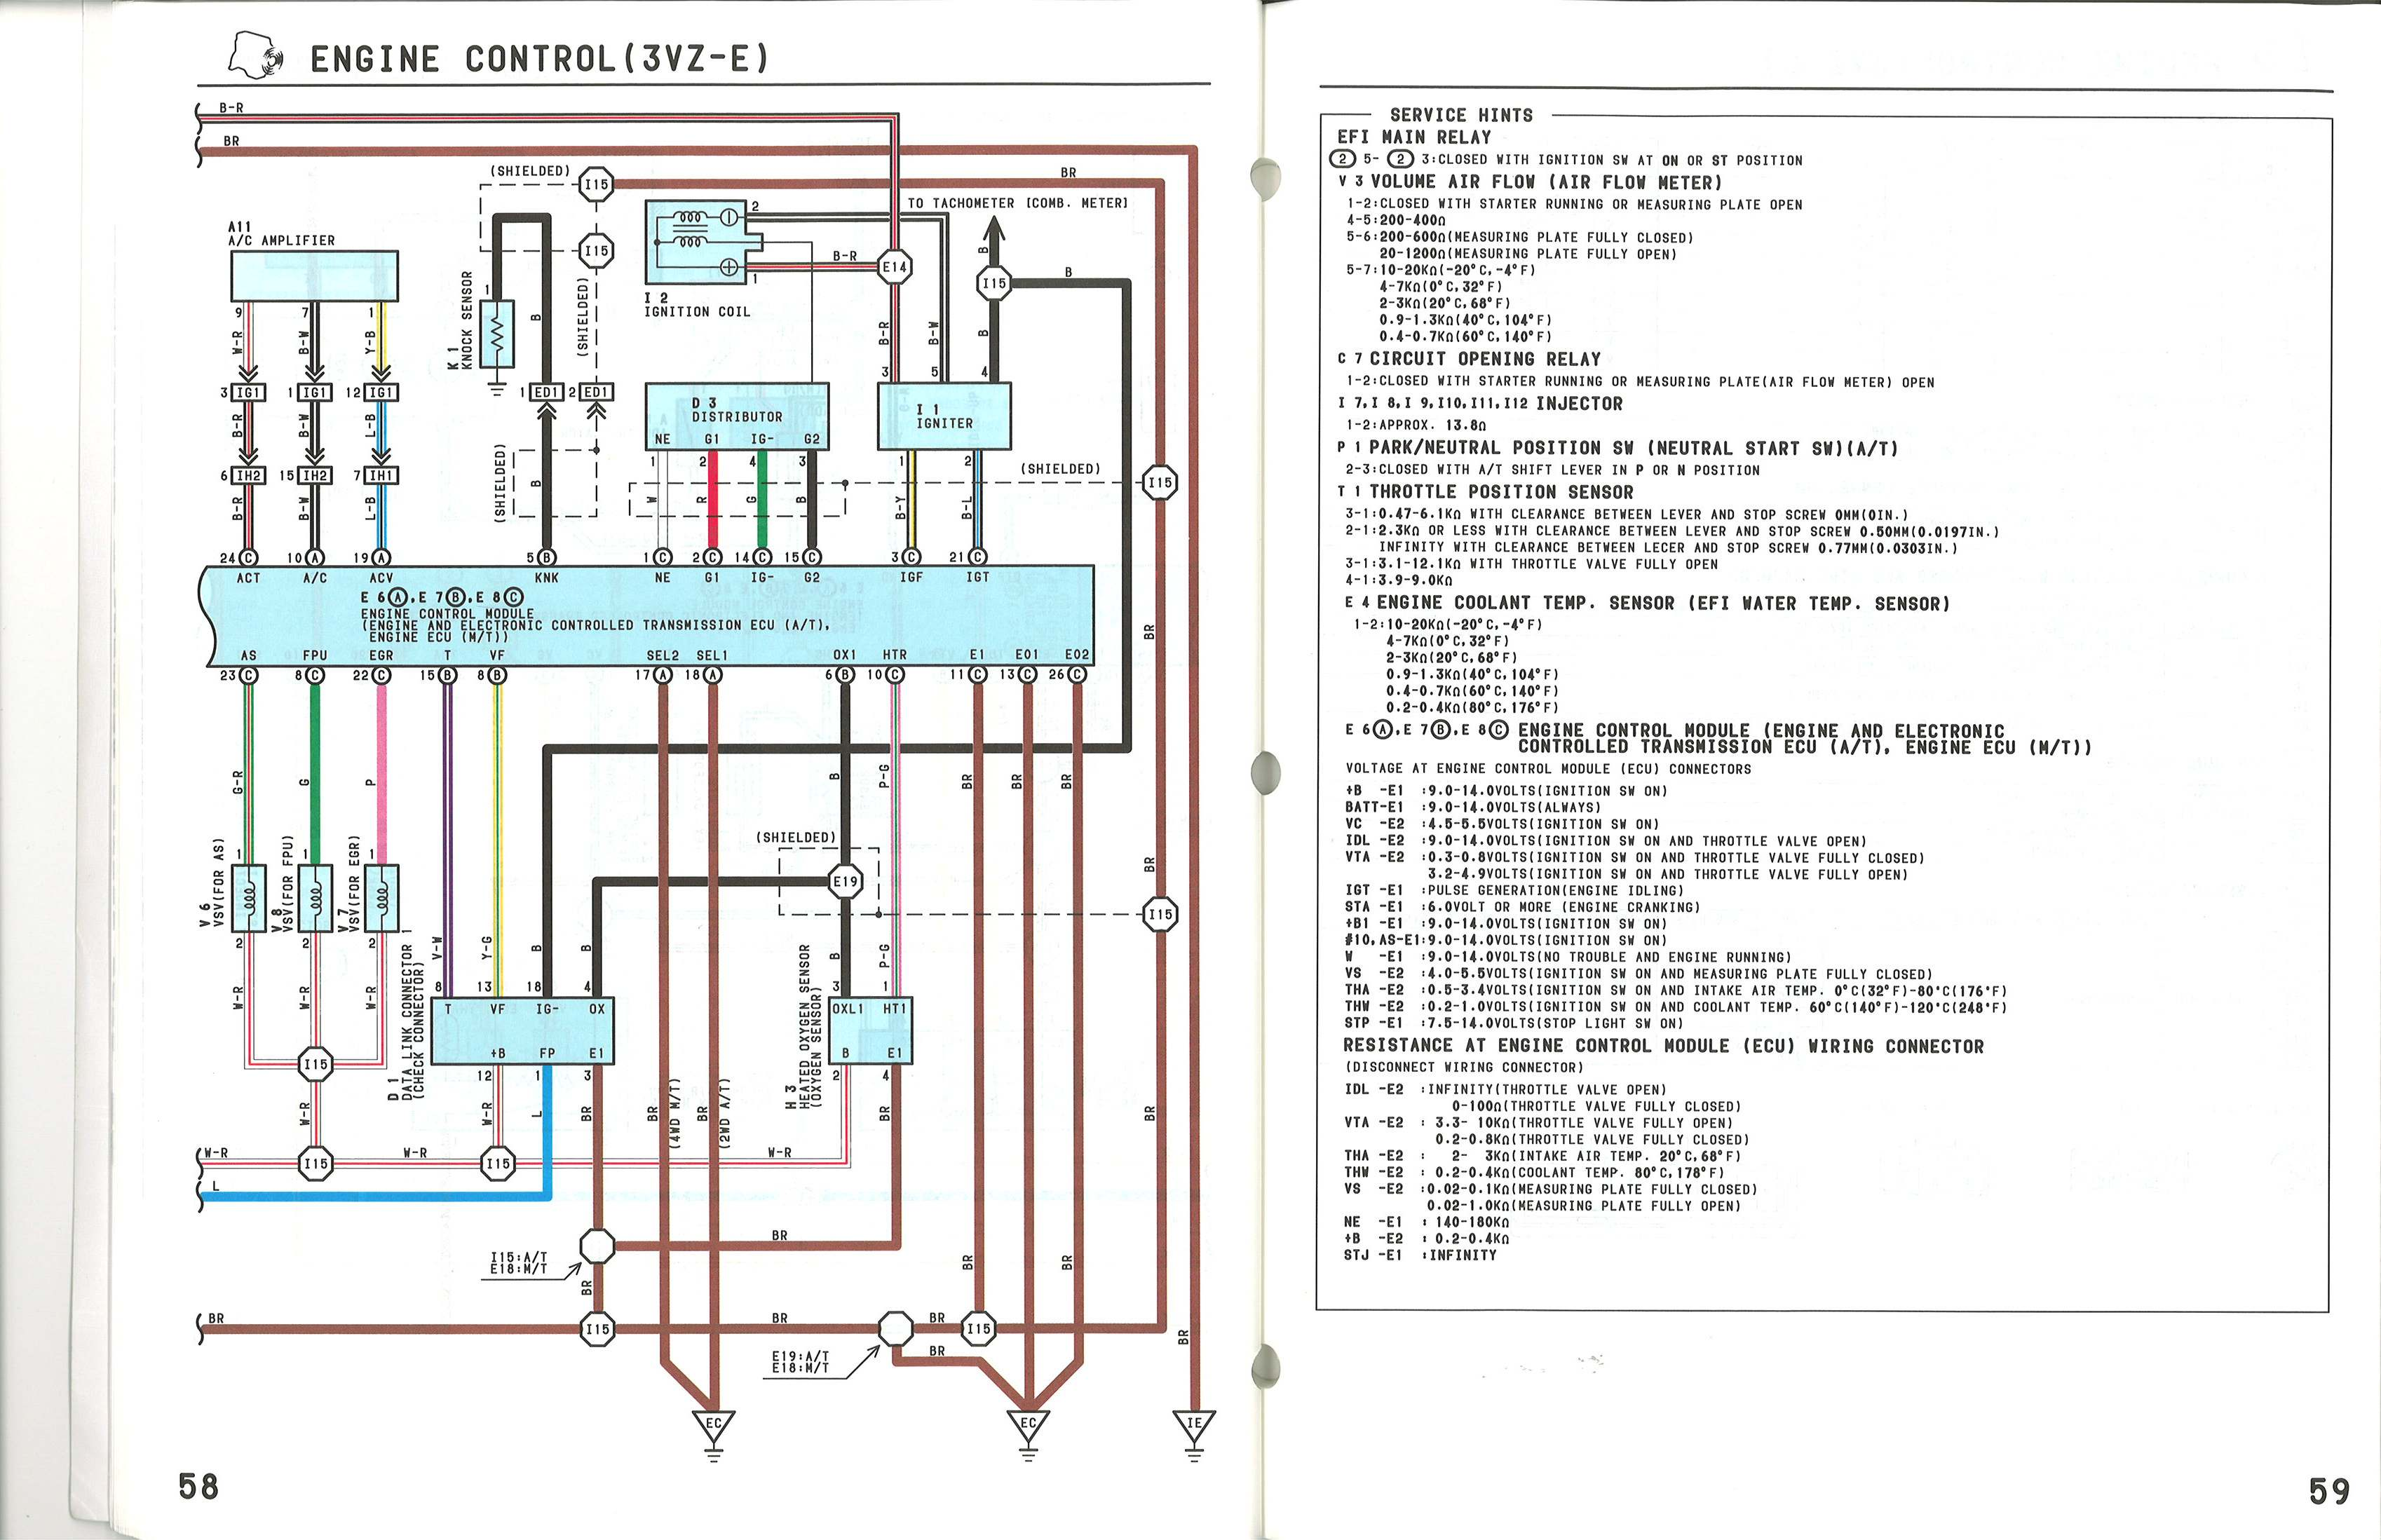 Engine_Control_3vze_3 ecu diagram for 1988 3vz e yotatech forums 1992 toyota pickup wiring harness diagram at crackthecode.co